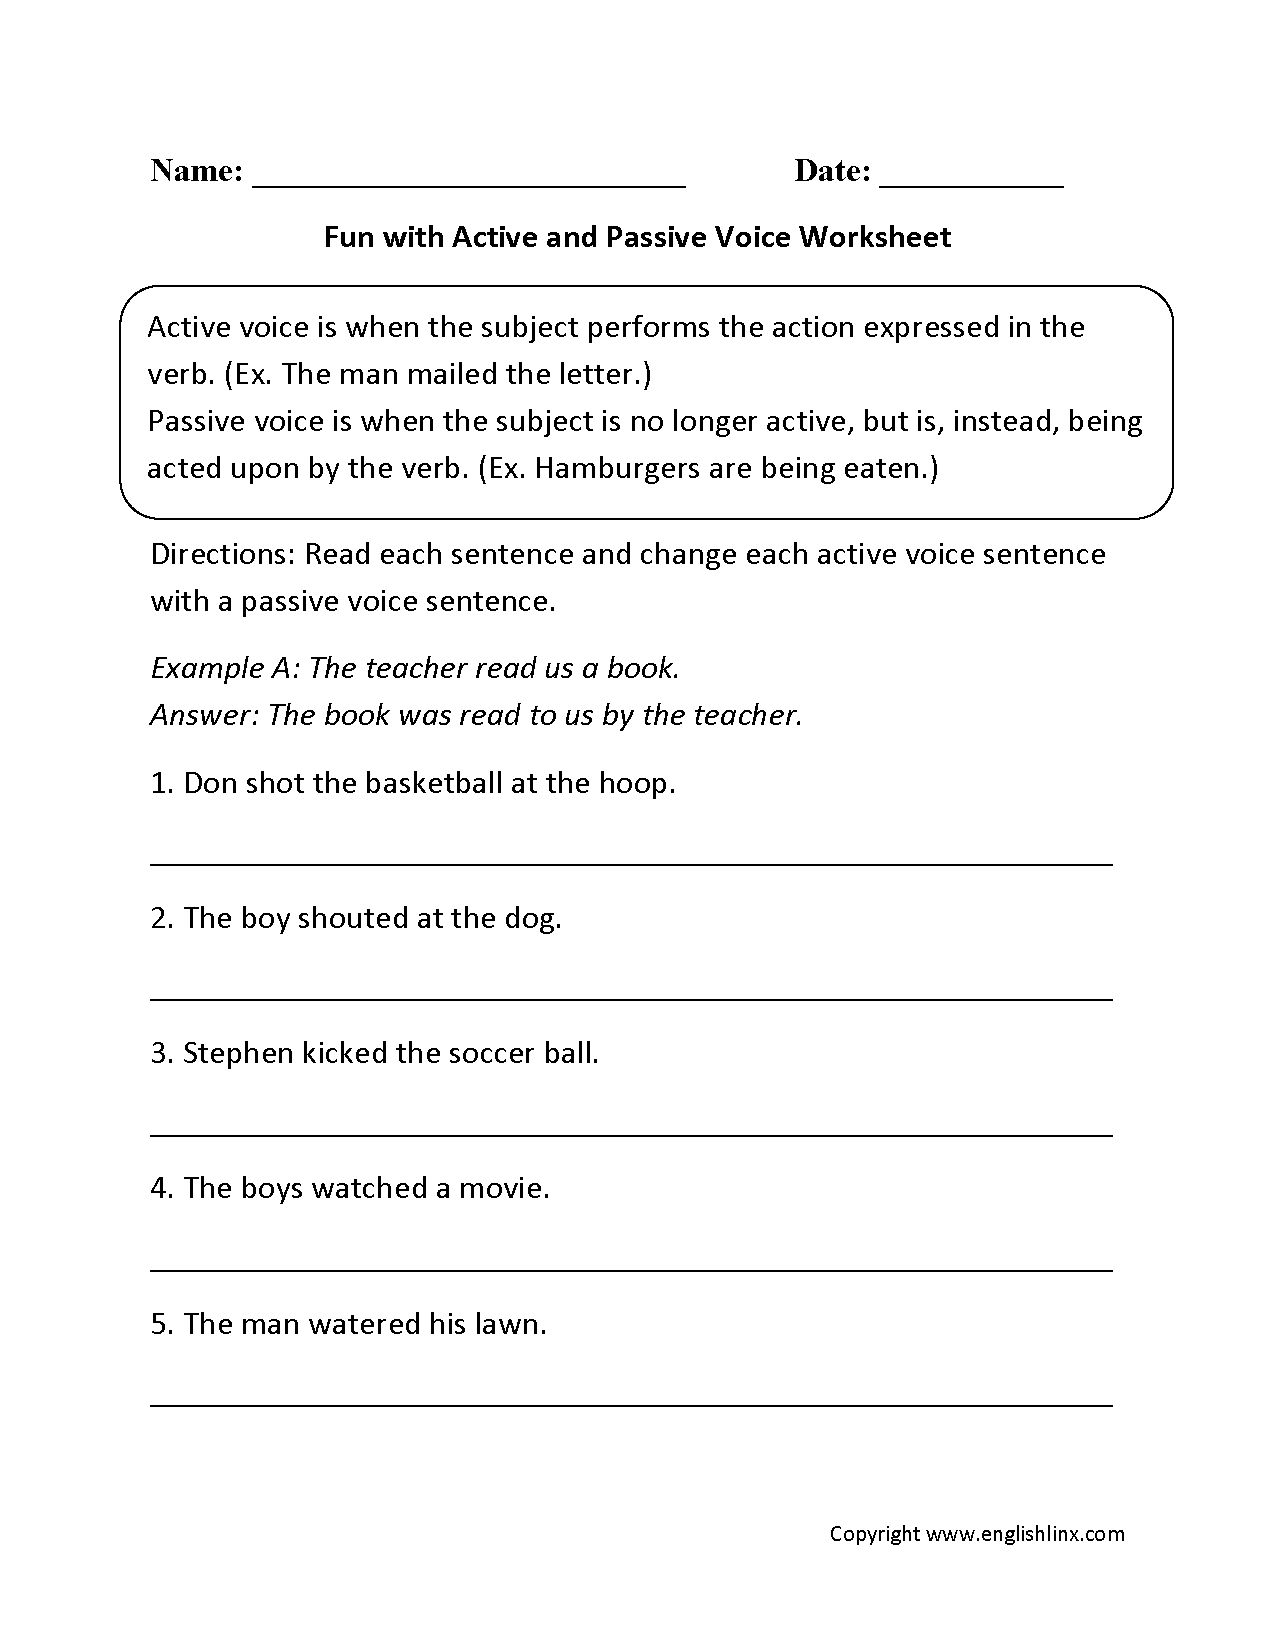 Graphing Worksheet For 7th Graders